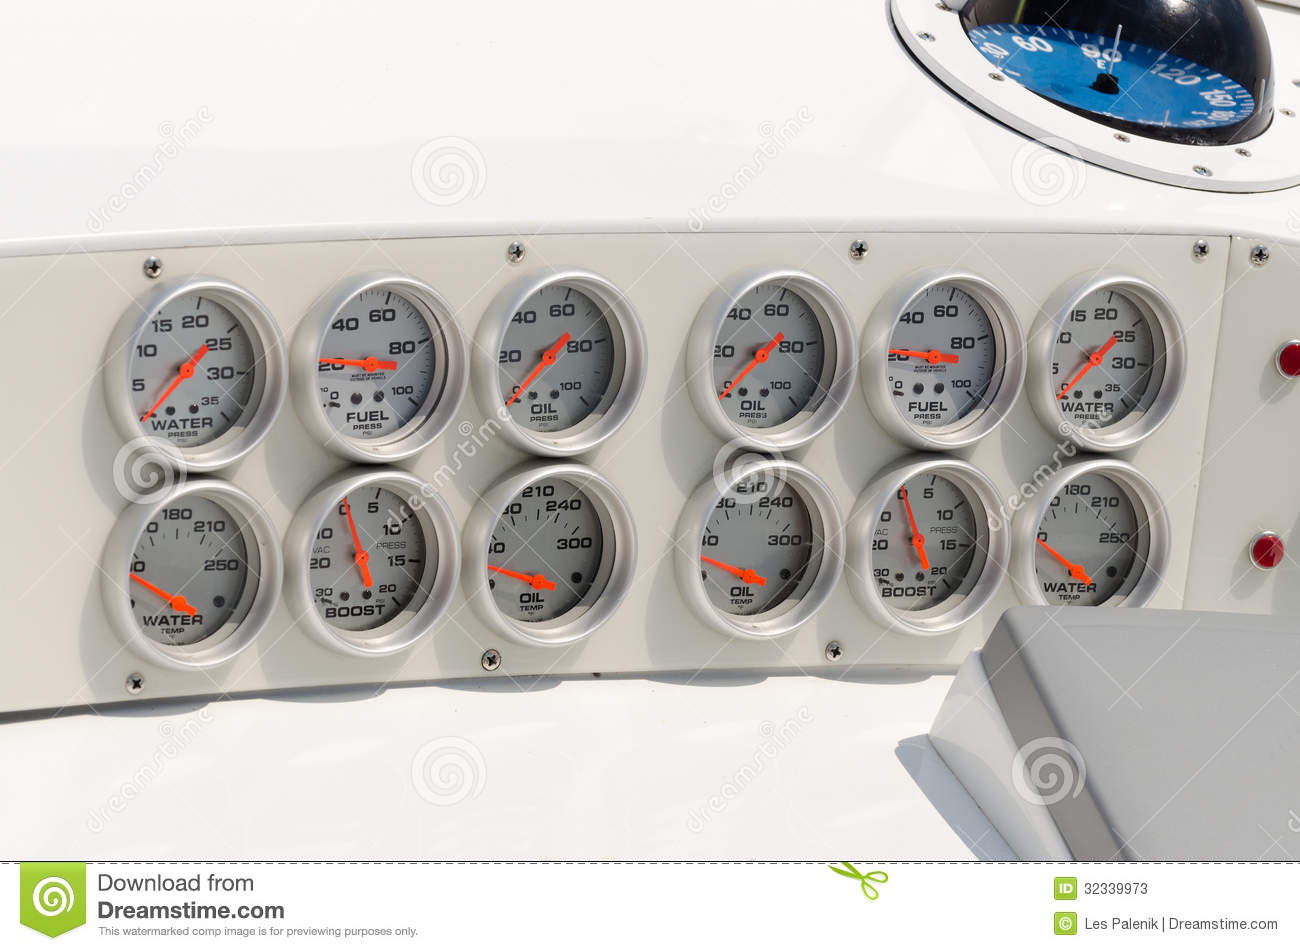 Boat Instrument Panel : Dashboard in a power boat stock photos image